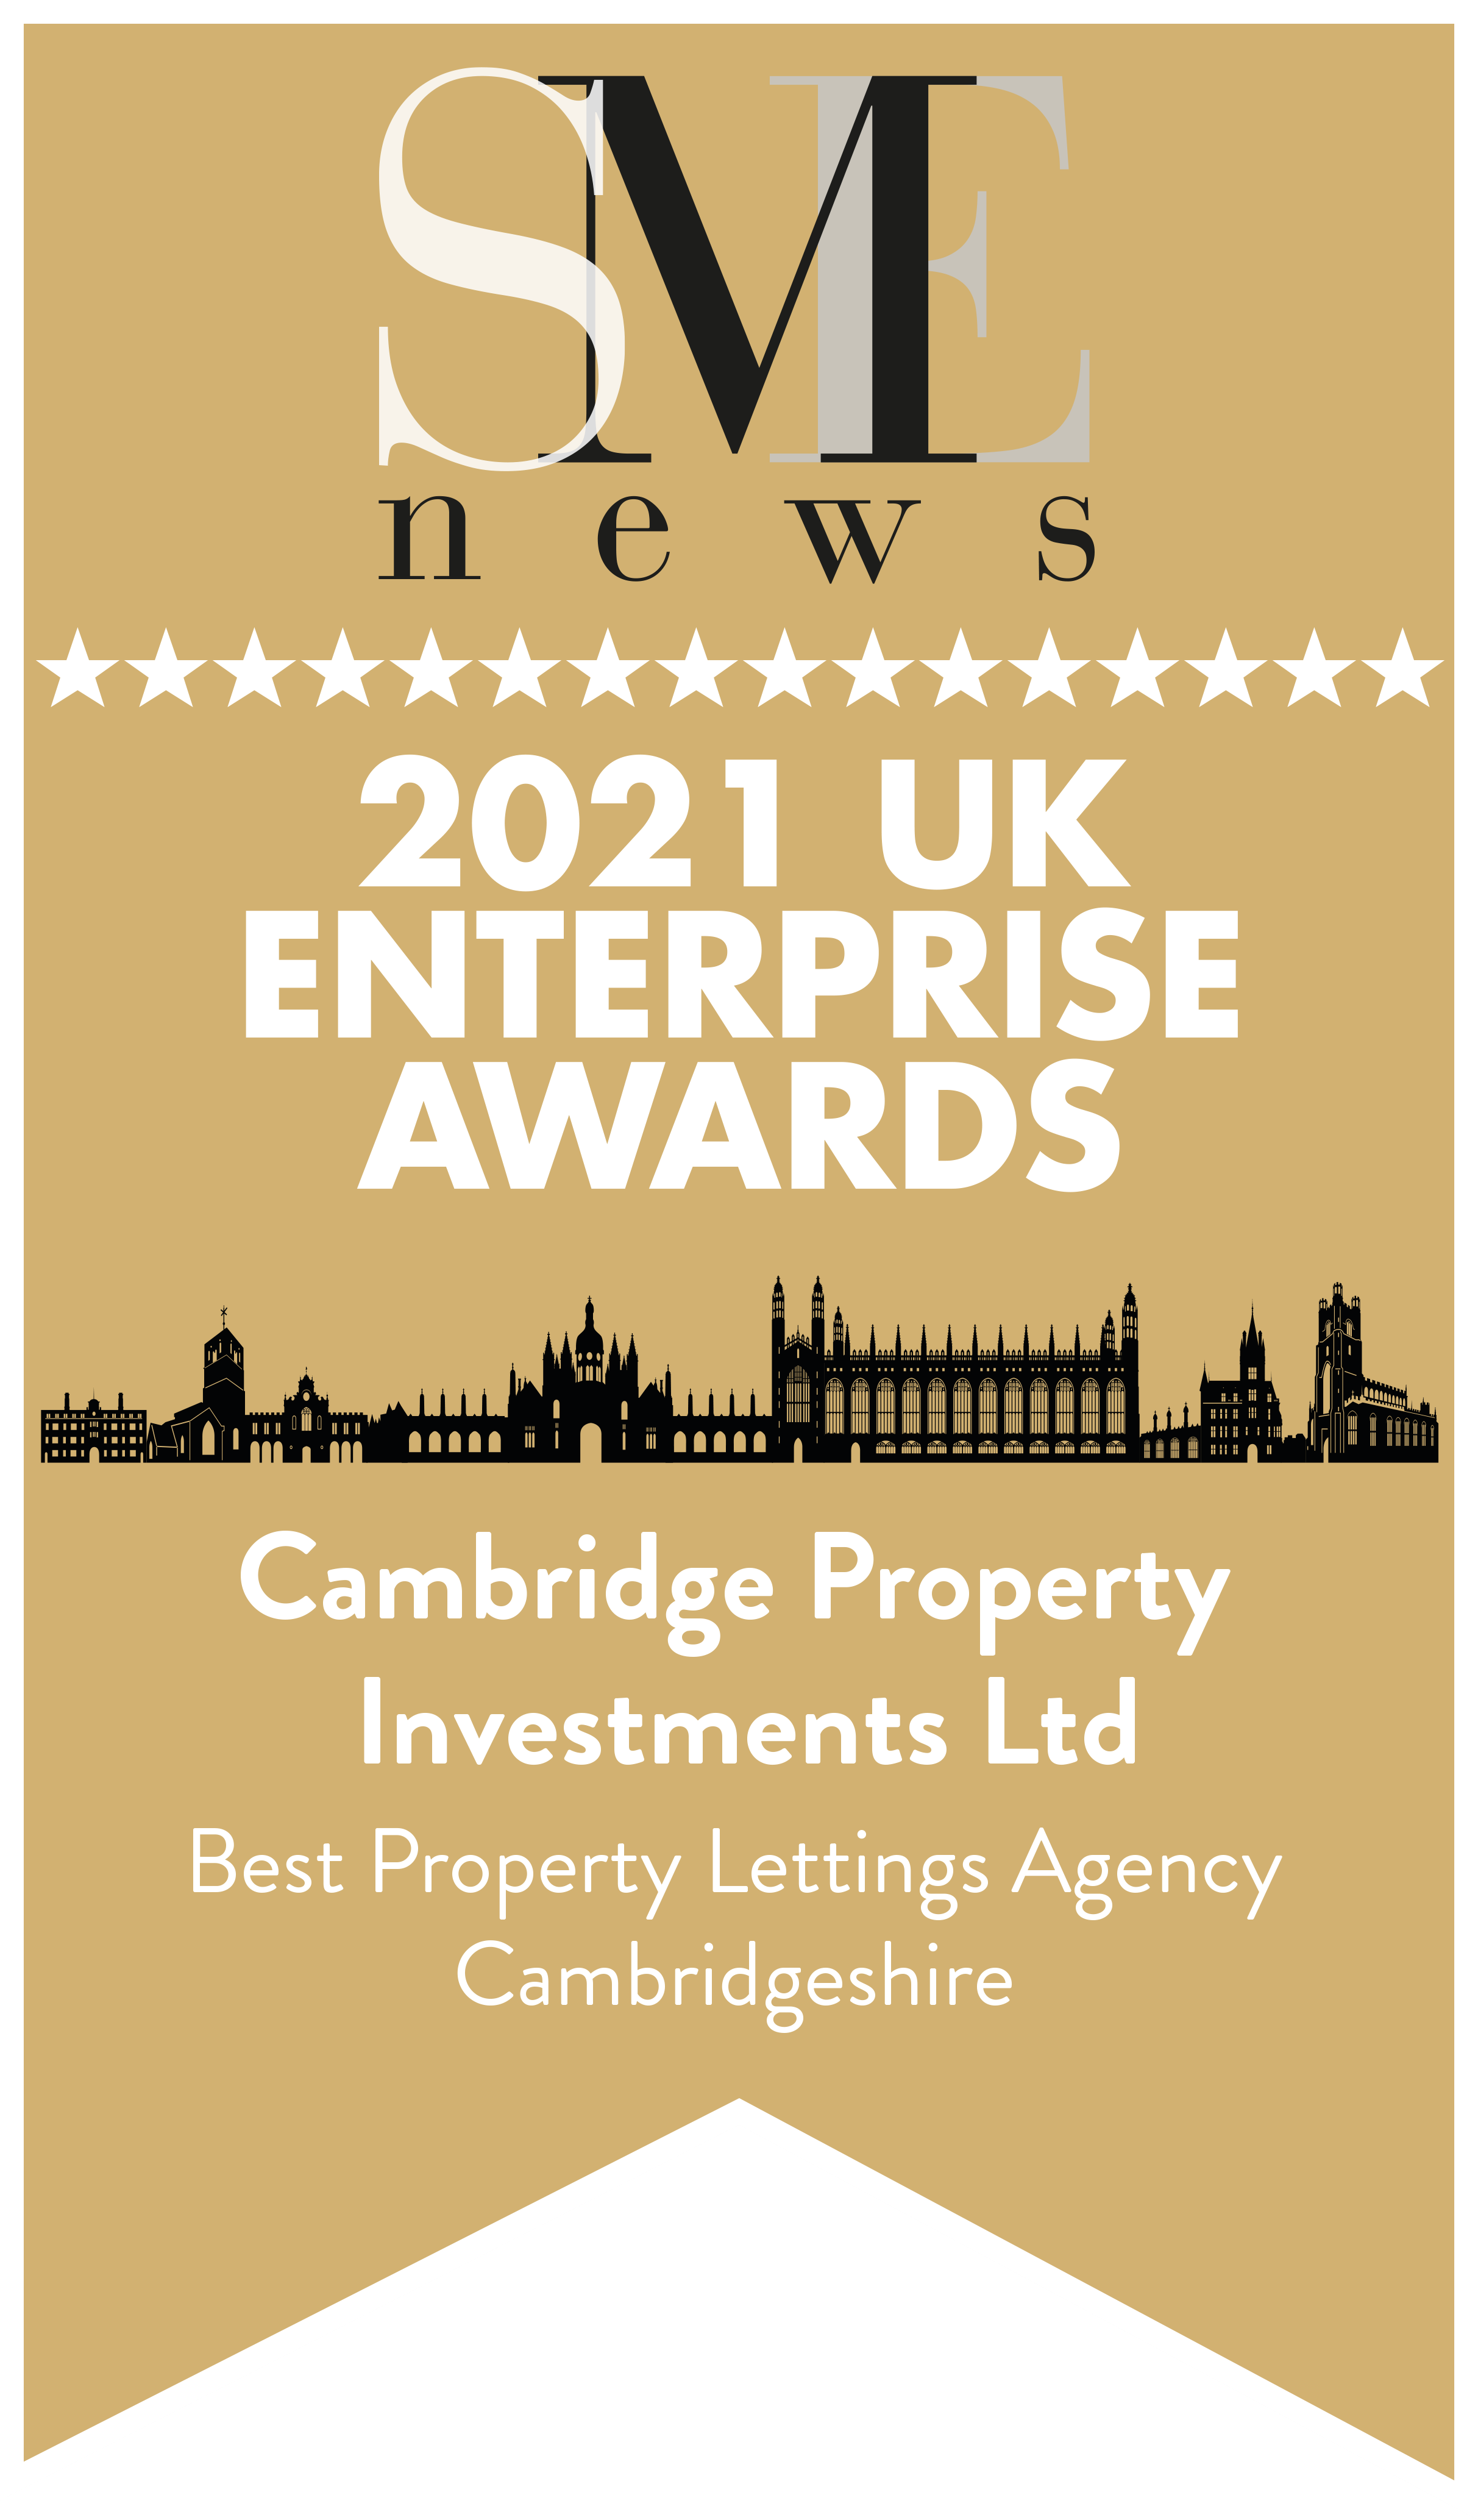 SME Best Property Lettings Agency Cambridgeshire